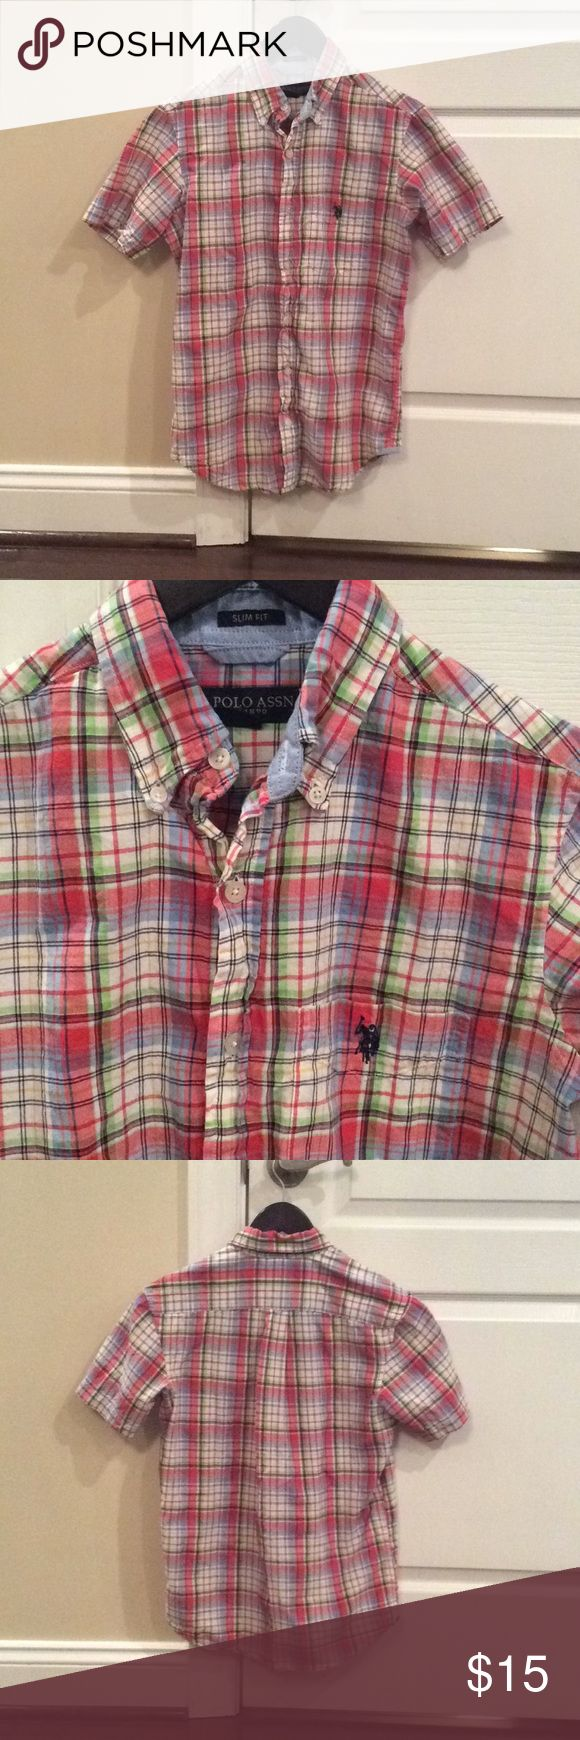 Men's U.S. Polo slim fit collared button down sz S Men's U.S. Polo association short sleeve slim fit collared button down shirt sz S. needs to be pressed but otherwise in good condition. U.S. Polo Assn. Shirts Casual Button Down Shirts